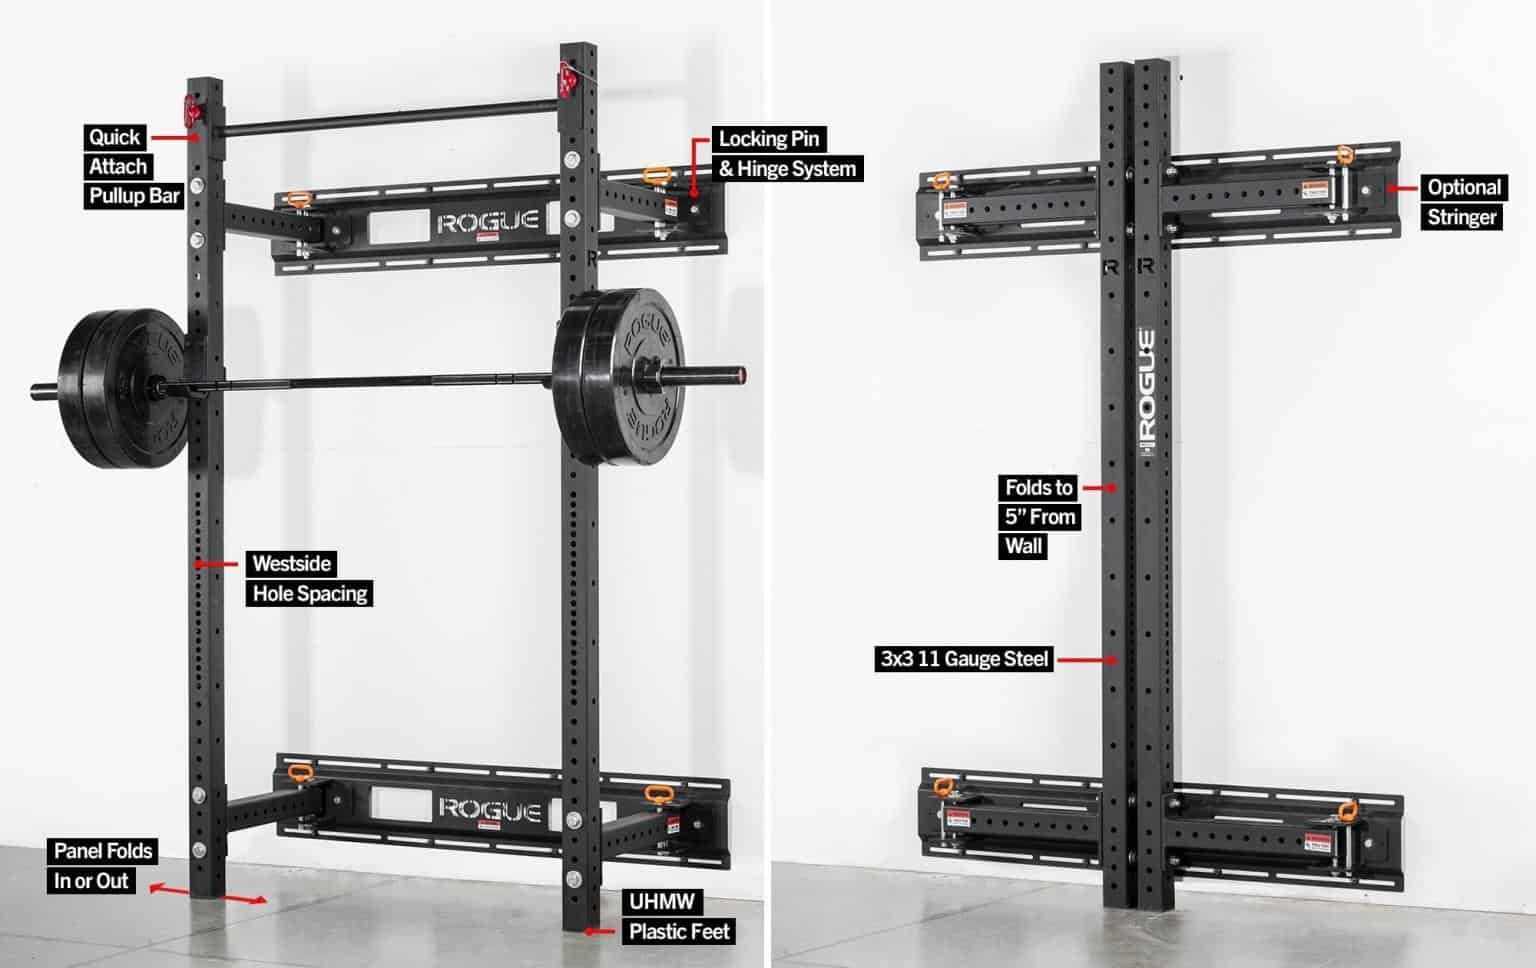 The Best Power Rack For Your Garage Gym Best Rack For 2019 Wall Mount Rack Home Gym Garage At Home Gym